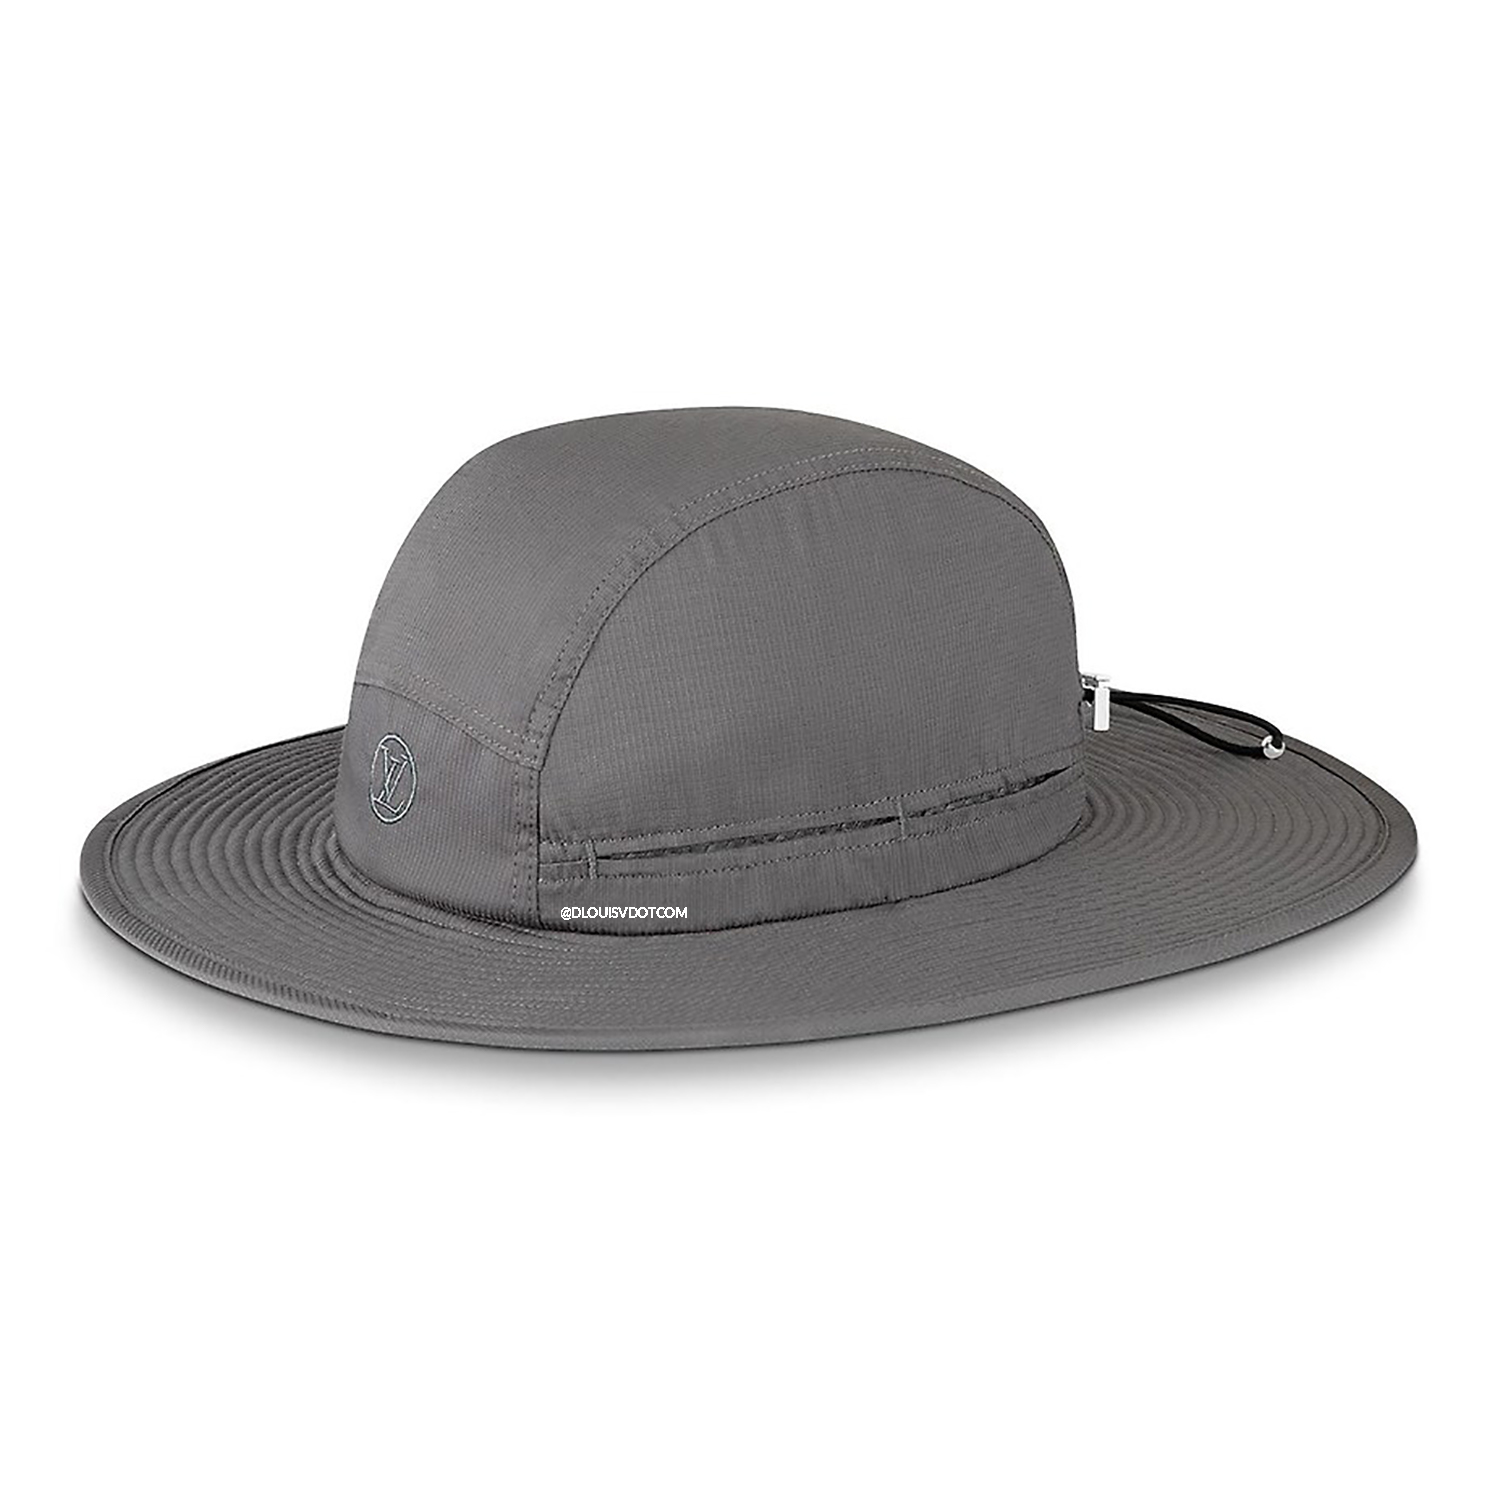 landscape hat - €895 $1285mp2169gris